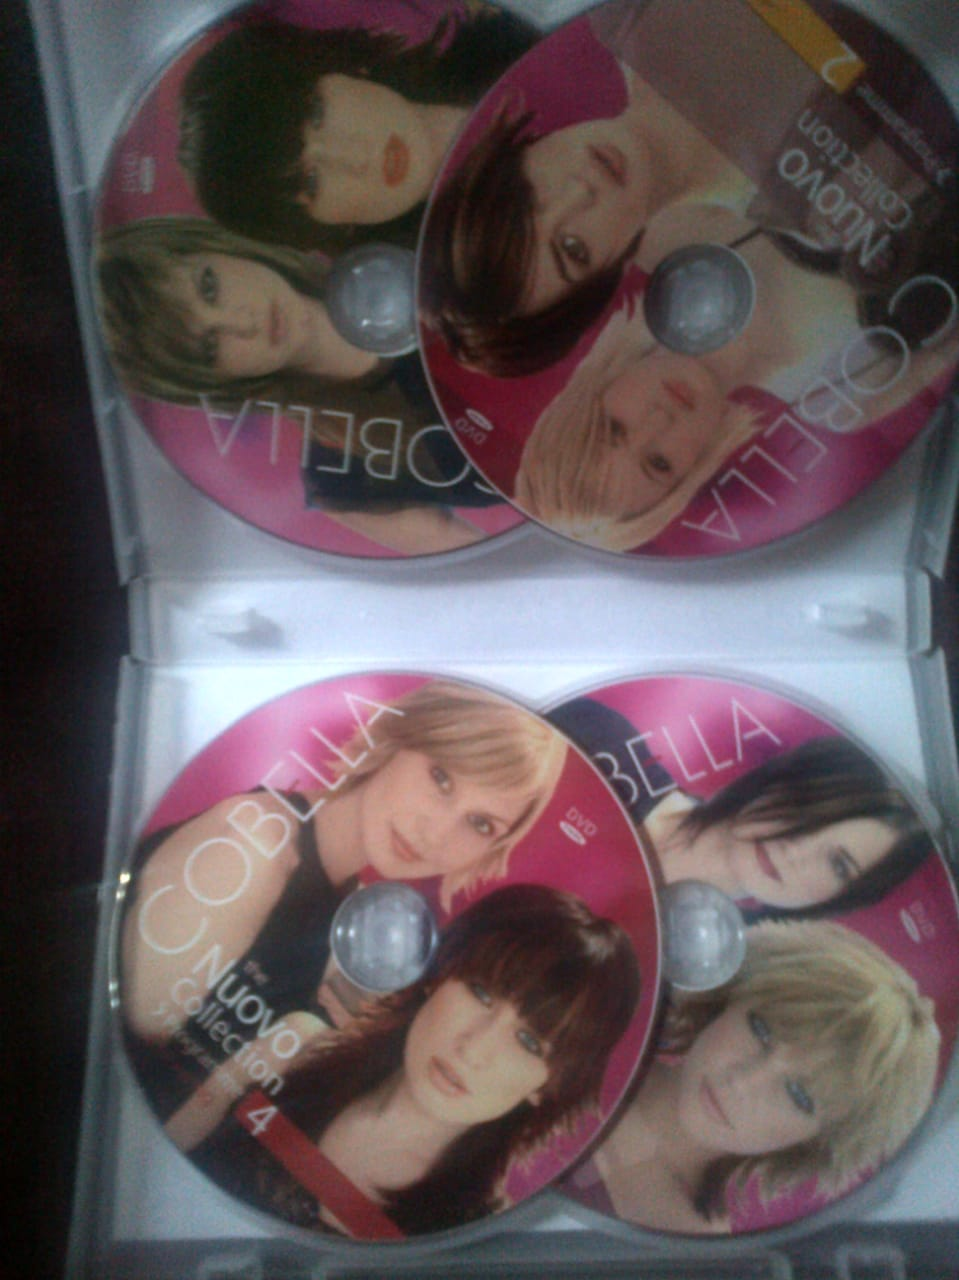 LEARNING HAIRCUT DVDs